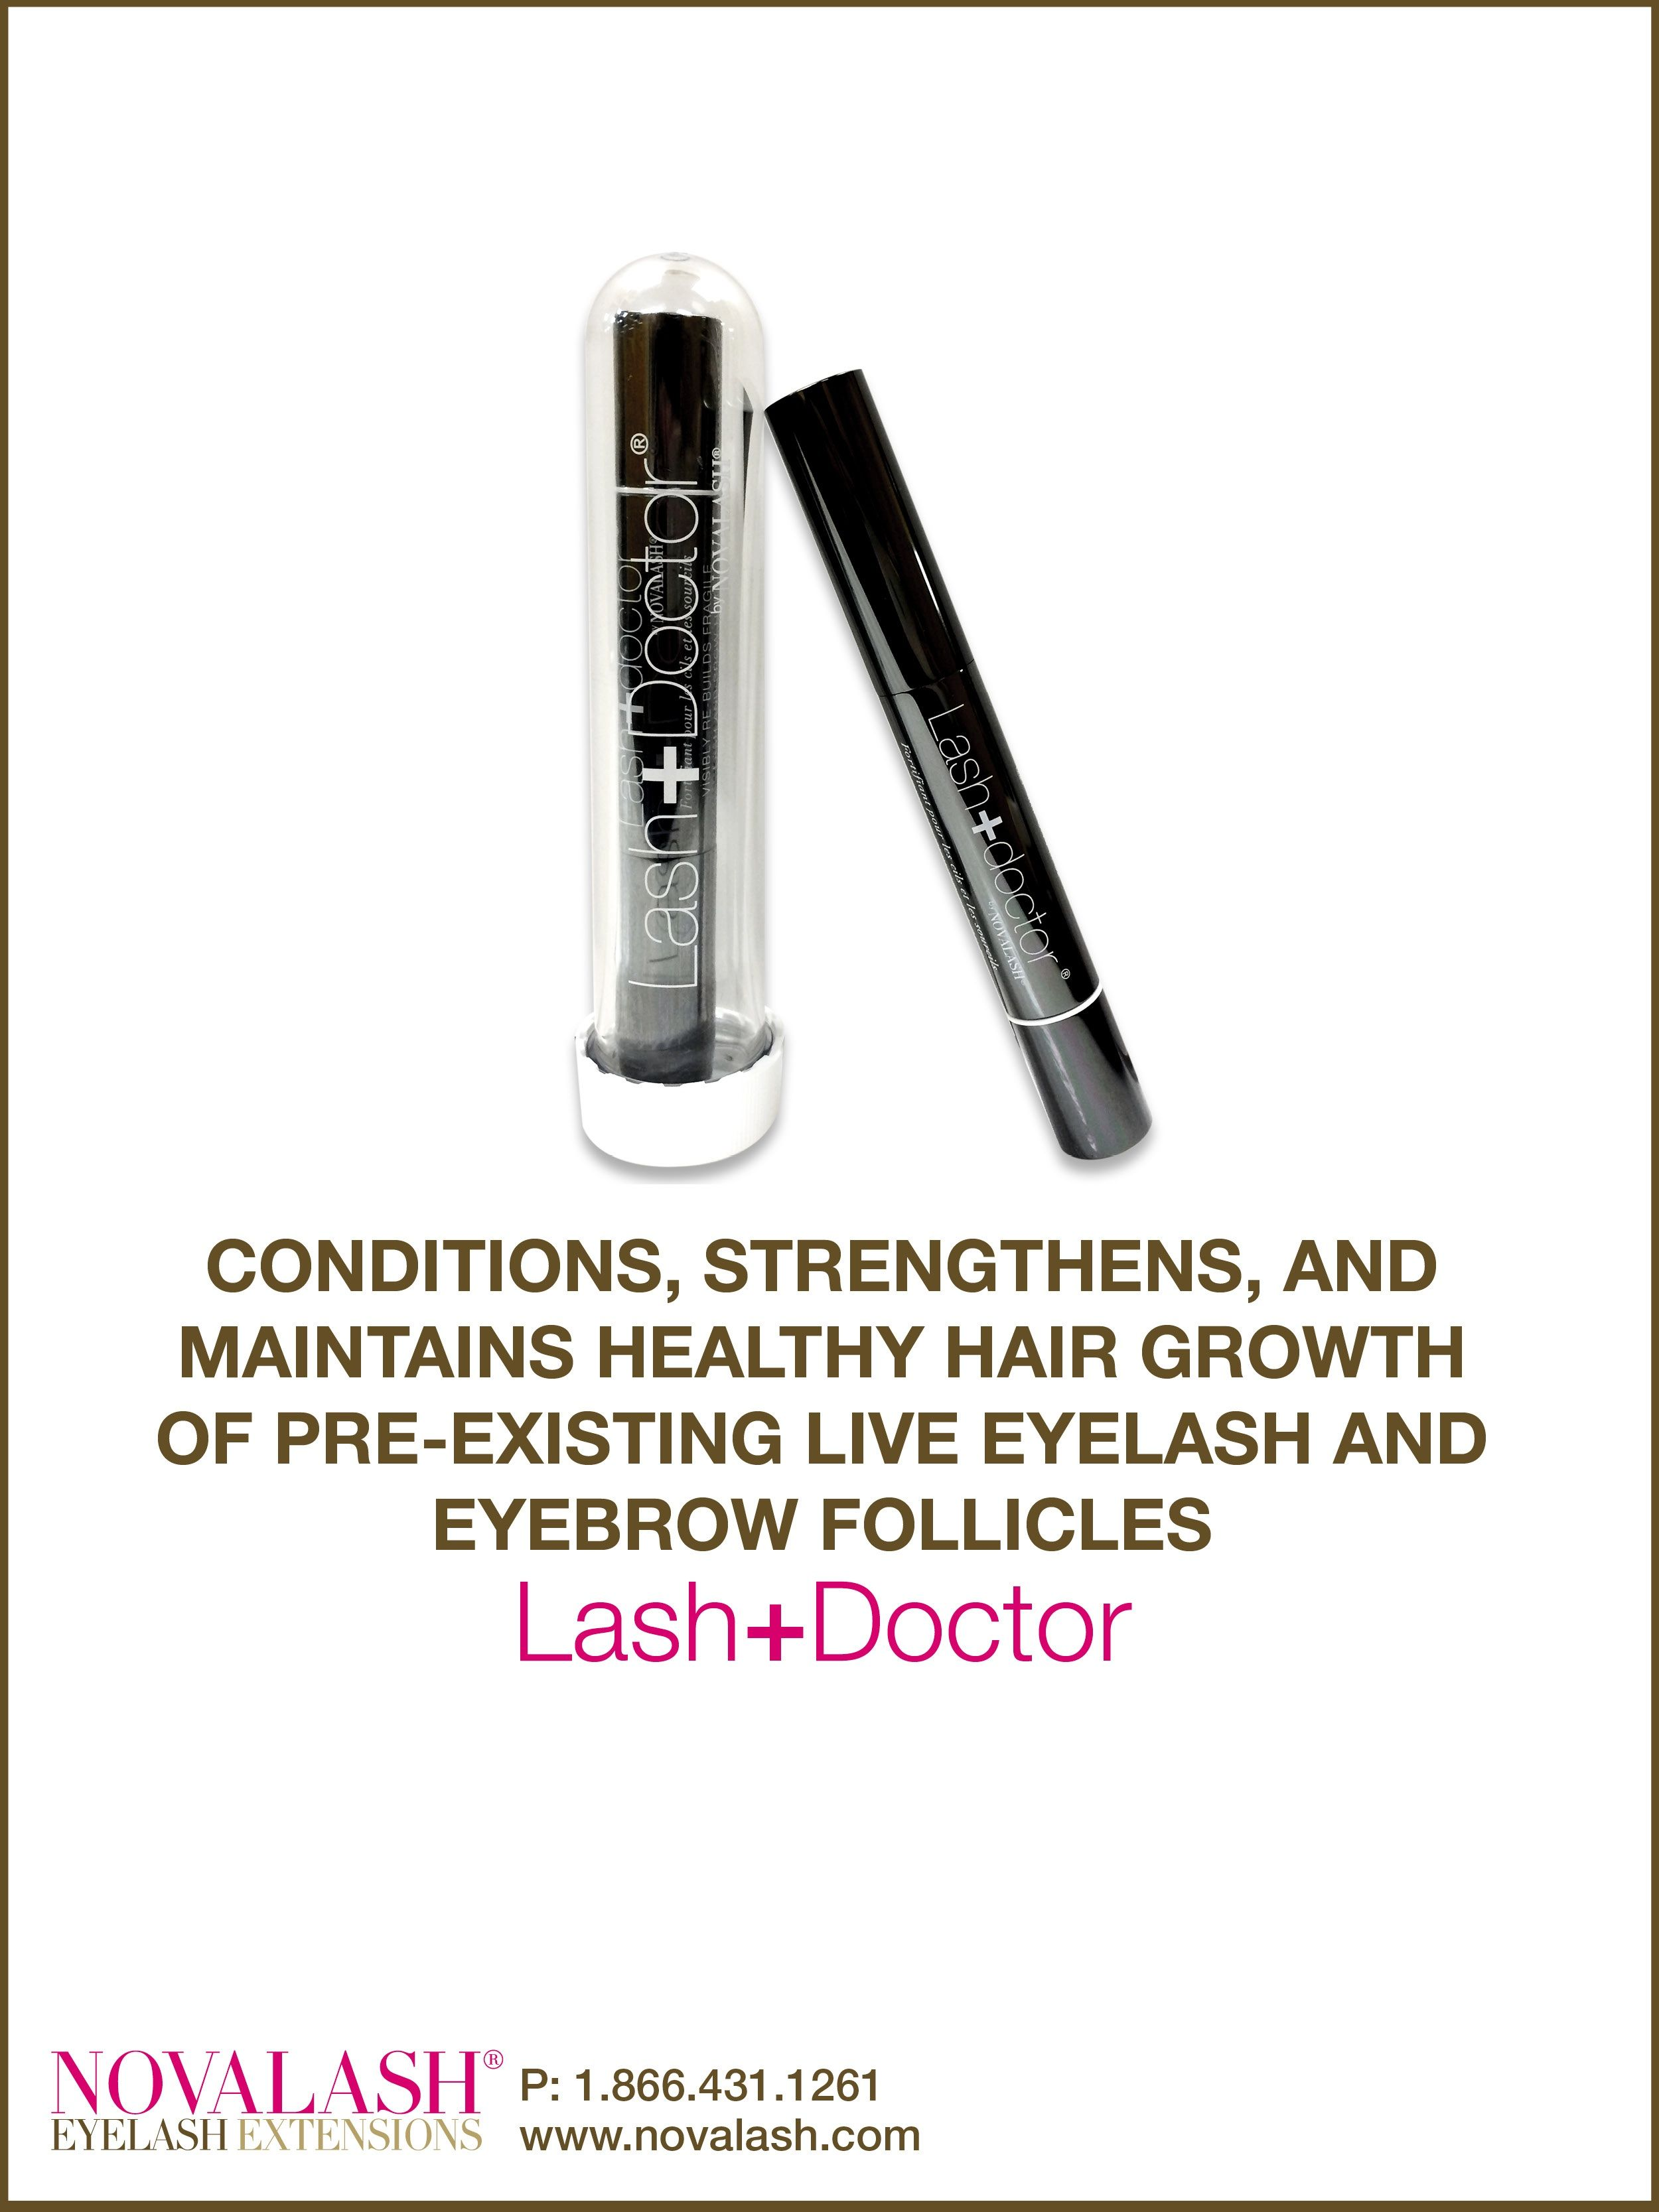 Good Morning Lashionistas! Looking for a product that strengthens your natural lashes? The NovaLash Lash+Doctor conditions, strengthens, and maintains healthy hair growth of your pre-existing eyelash and eyebrow follicles! Call us TODAY to order yours! #effortlessbeauty #beautiful #itsnovalashornothing #eyes #makeup #lashes